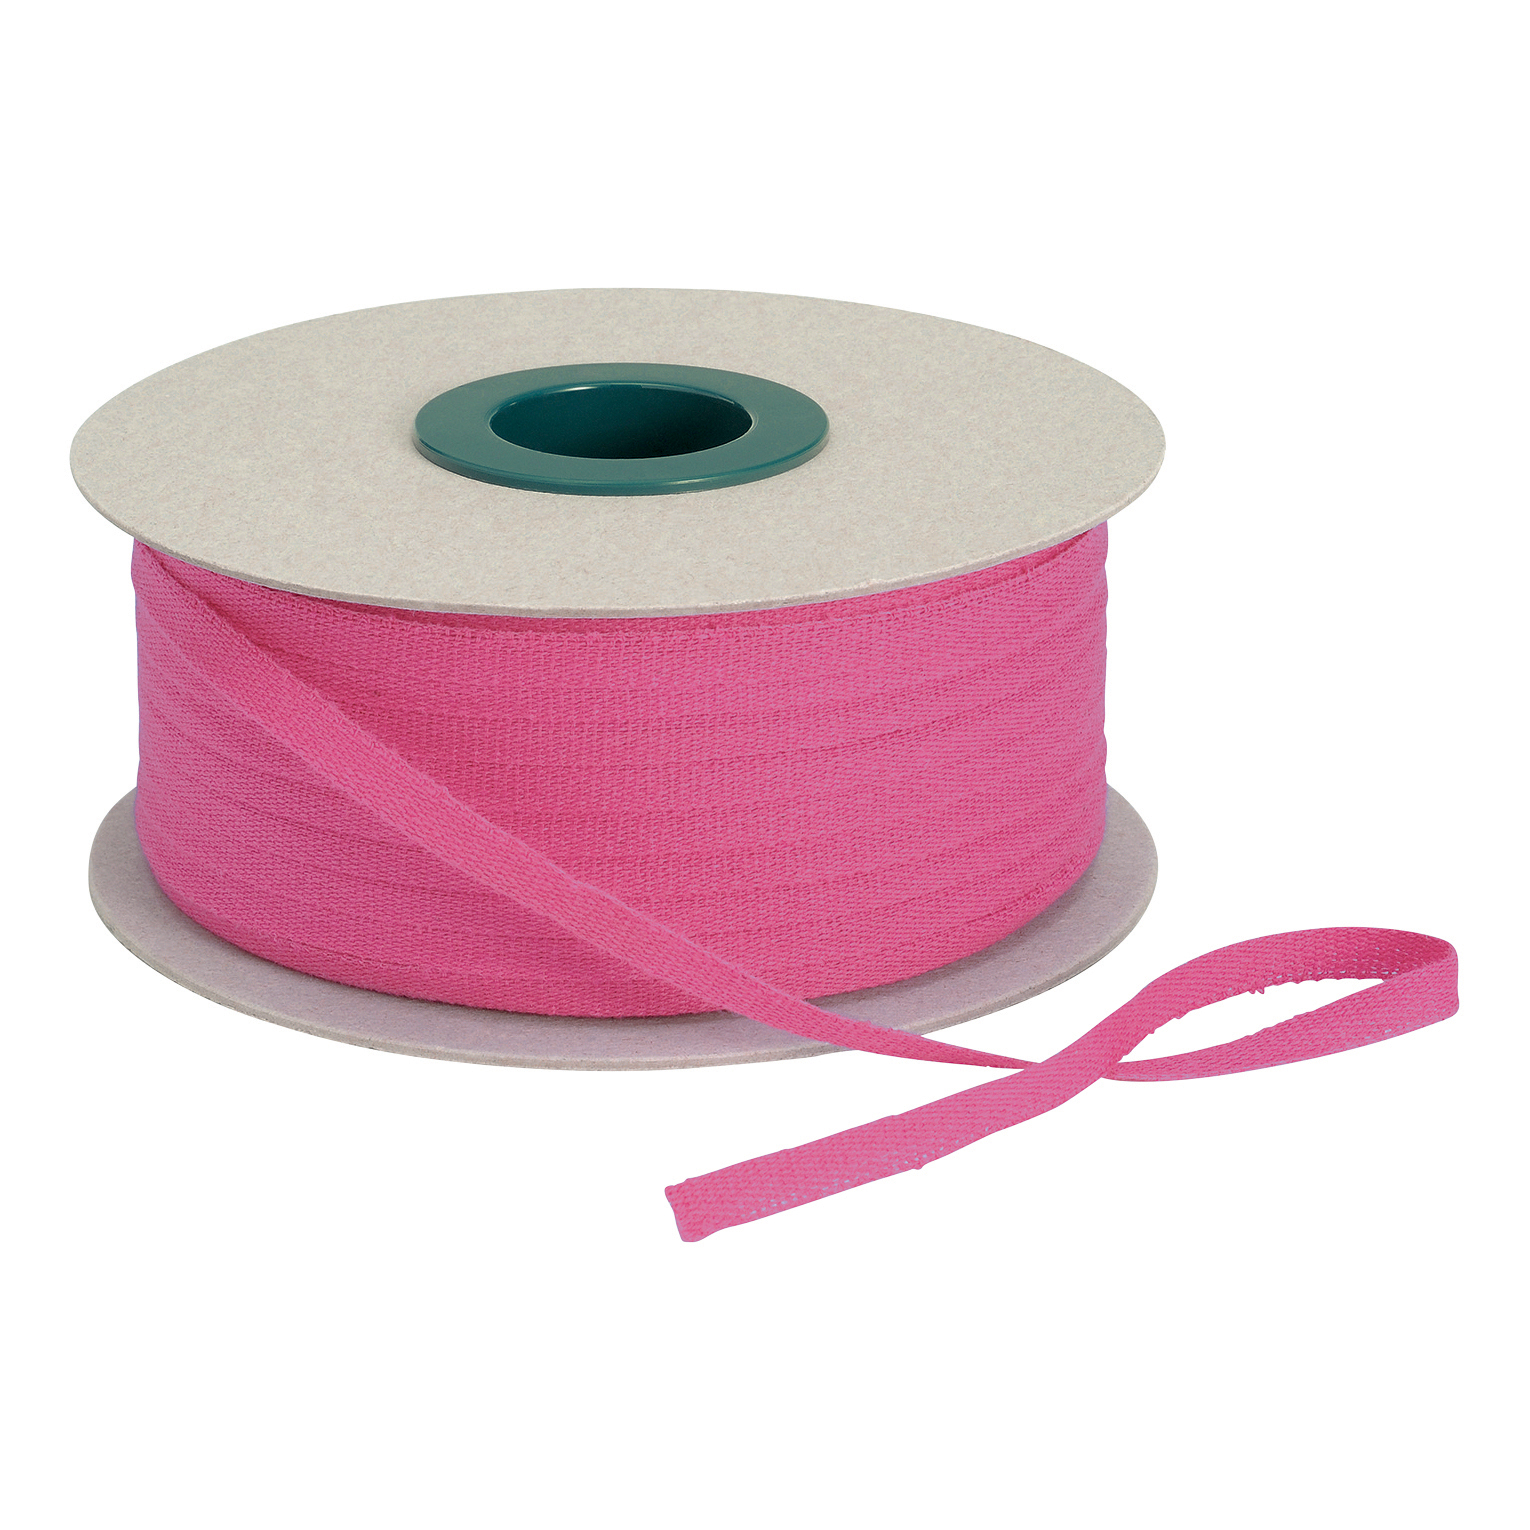 Legal Tape Reel 6mmx150m Pink Code R7018006015